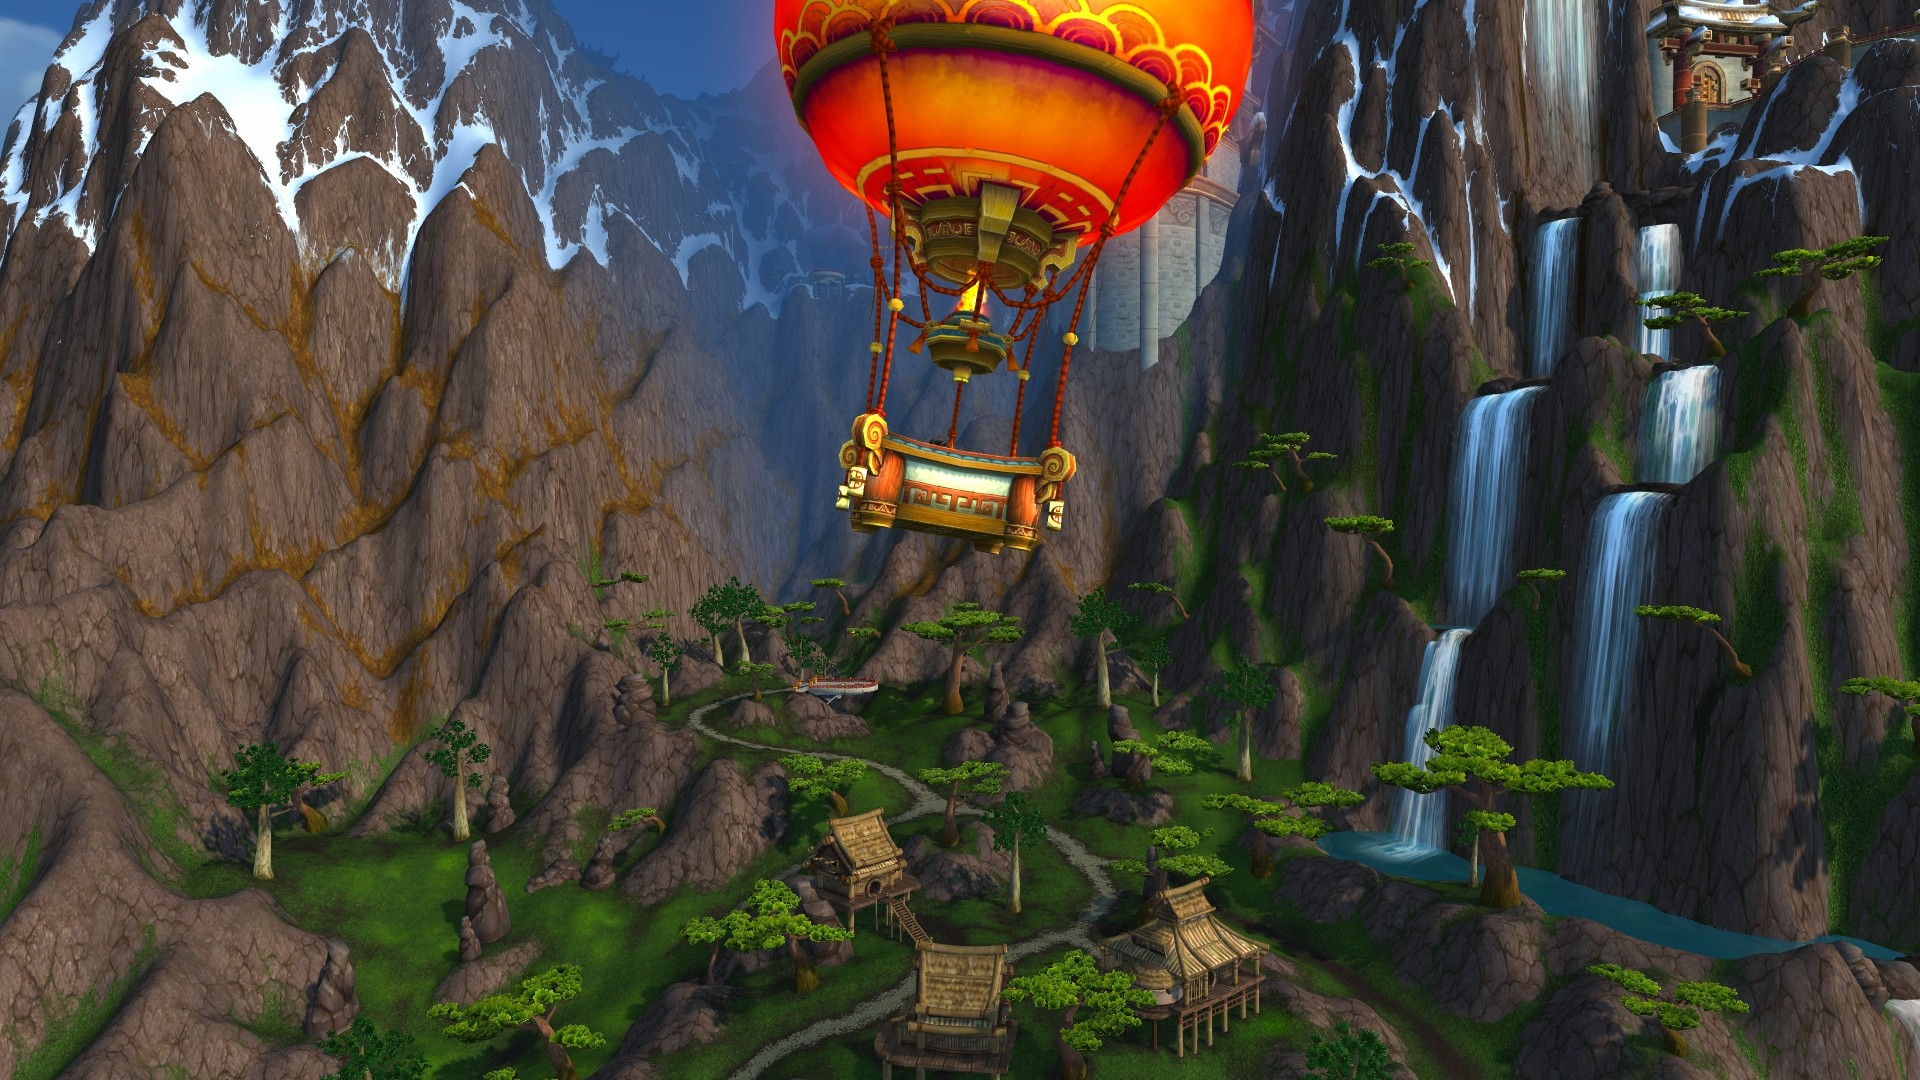 World of Warcraft: Mists of Pandaria - Ballooning around